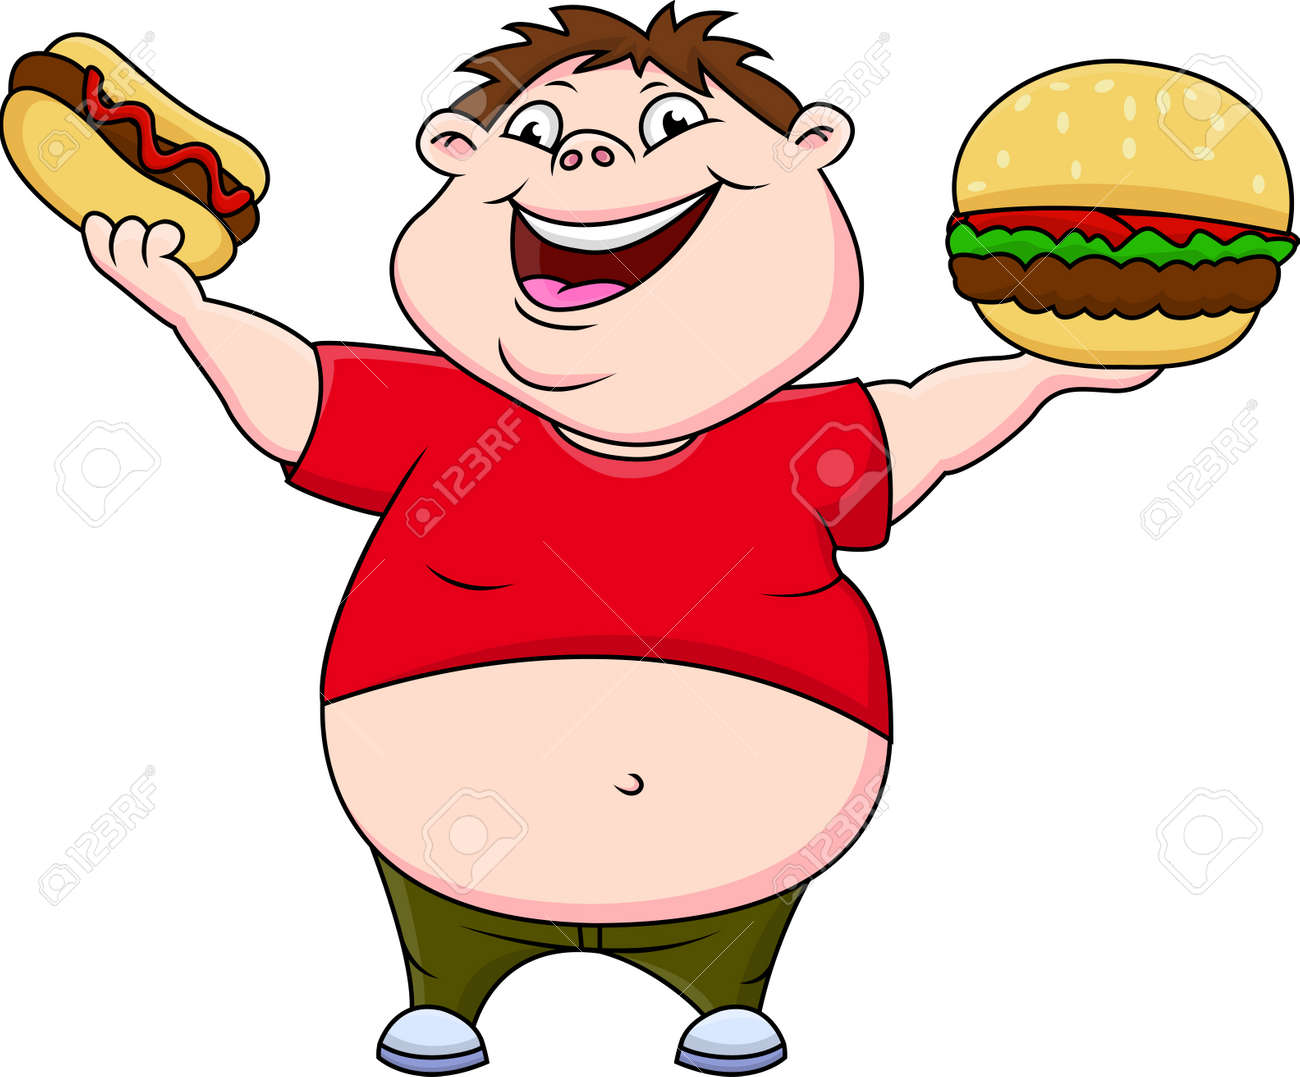 fat boy smiling and ready to eat hotdog and hamburger royalty free  cliparts, vectors, and stock illustration. image 53034591.  123rf